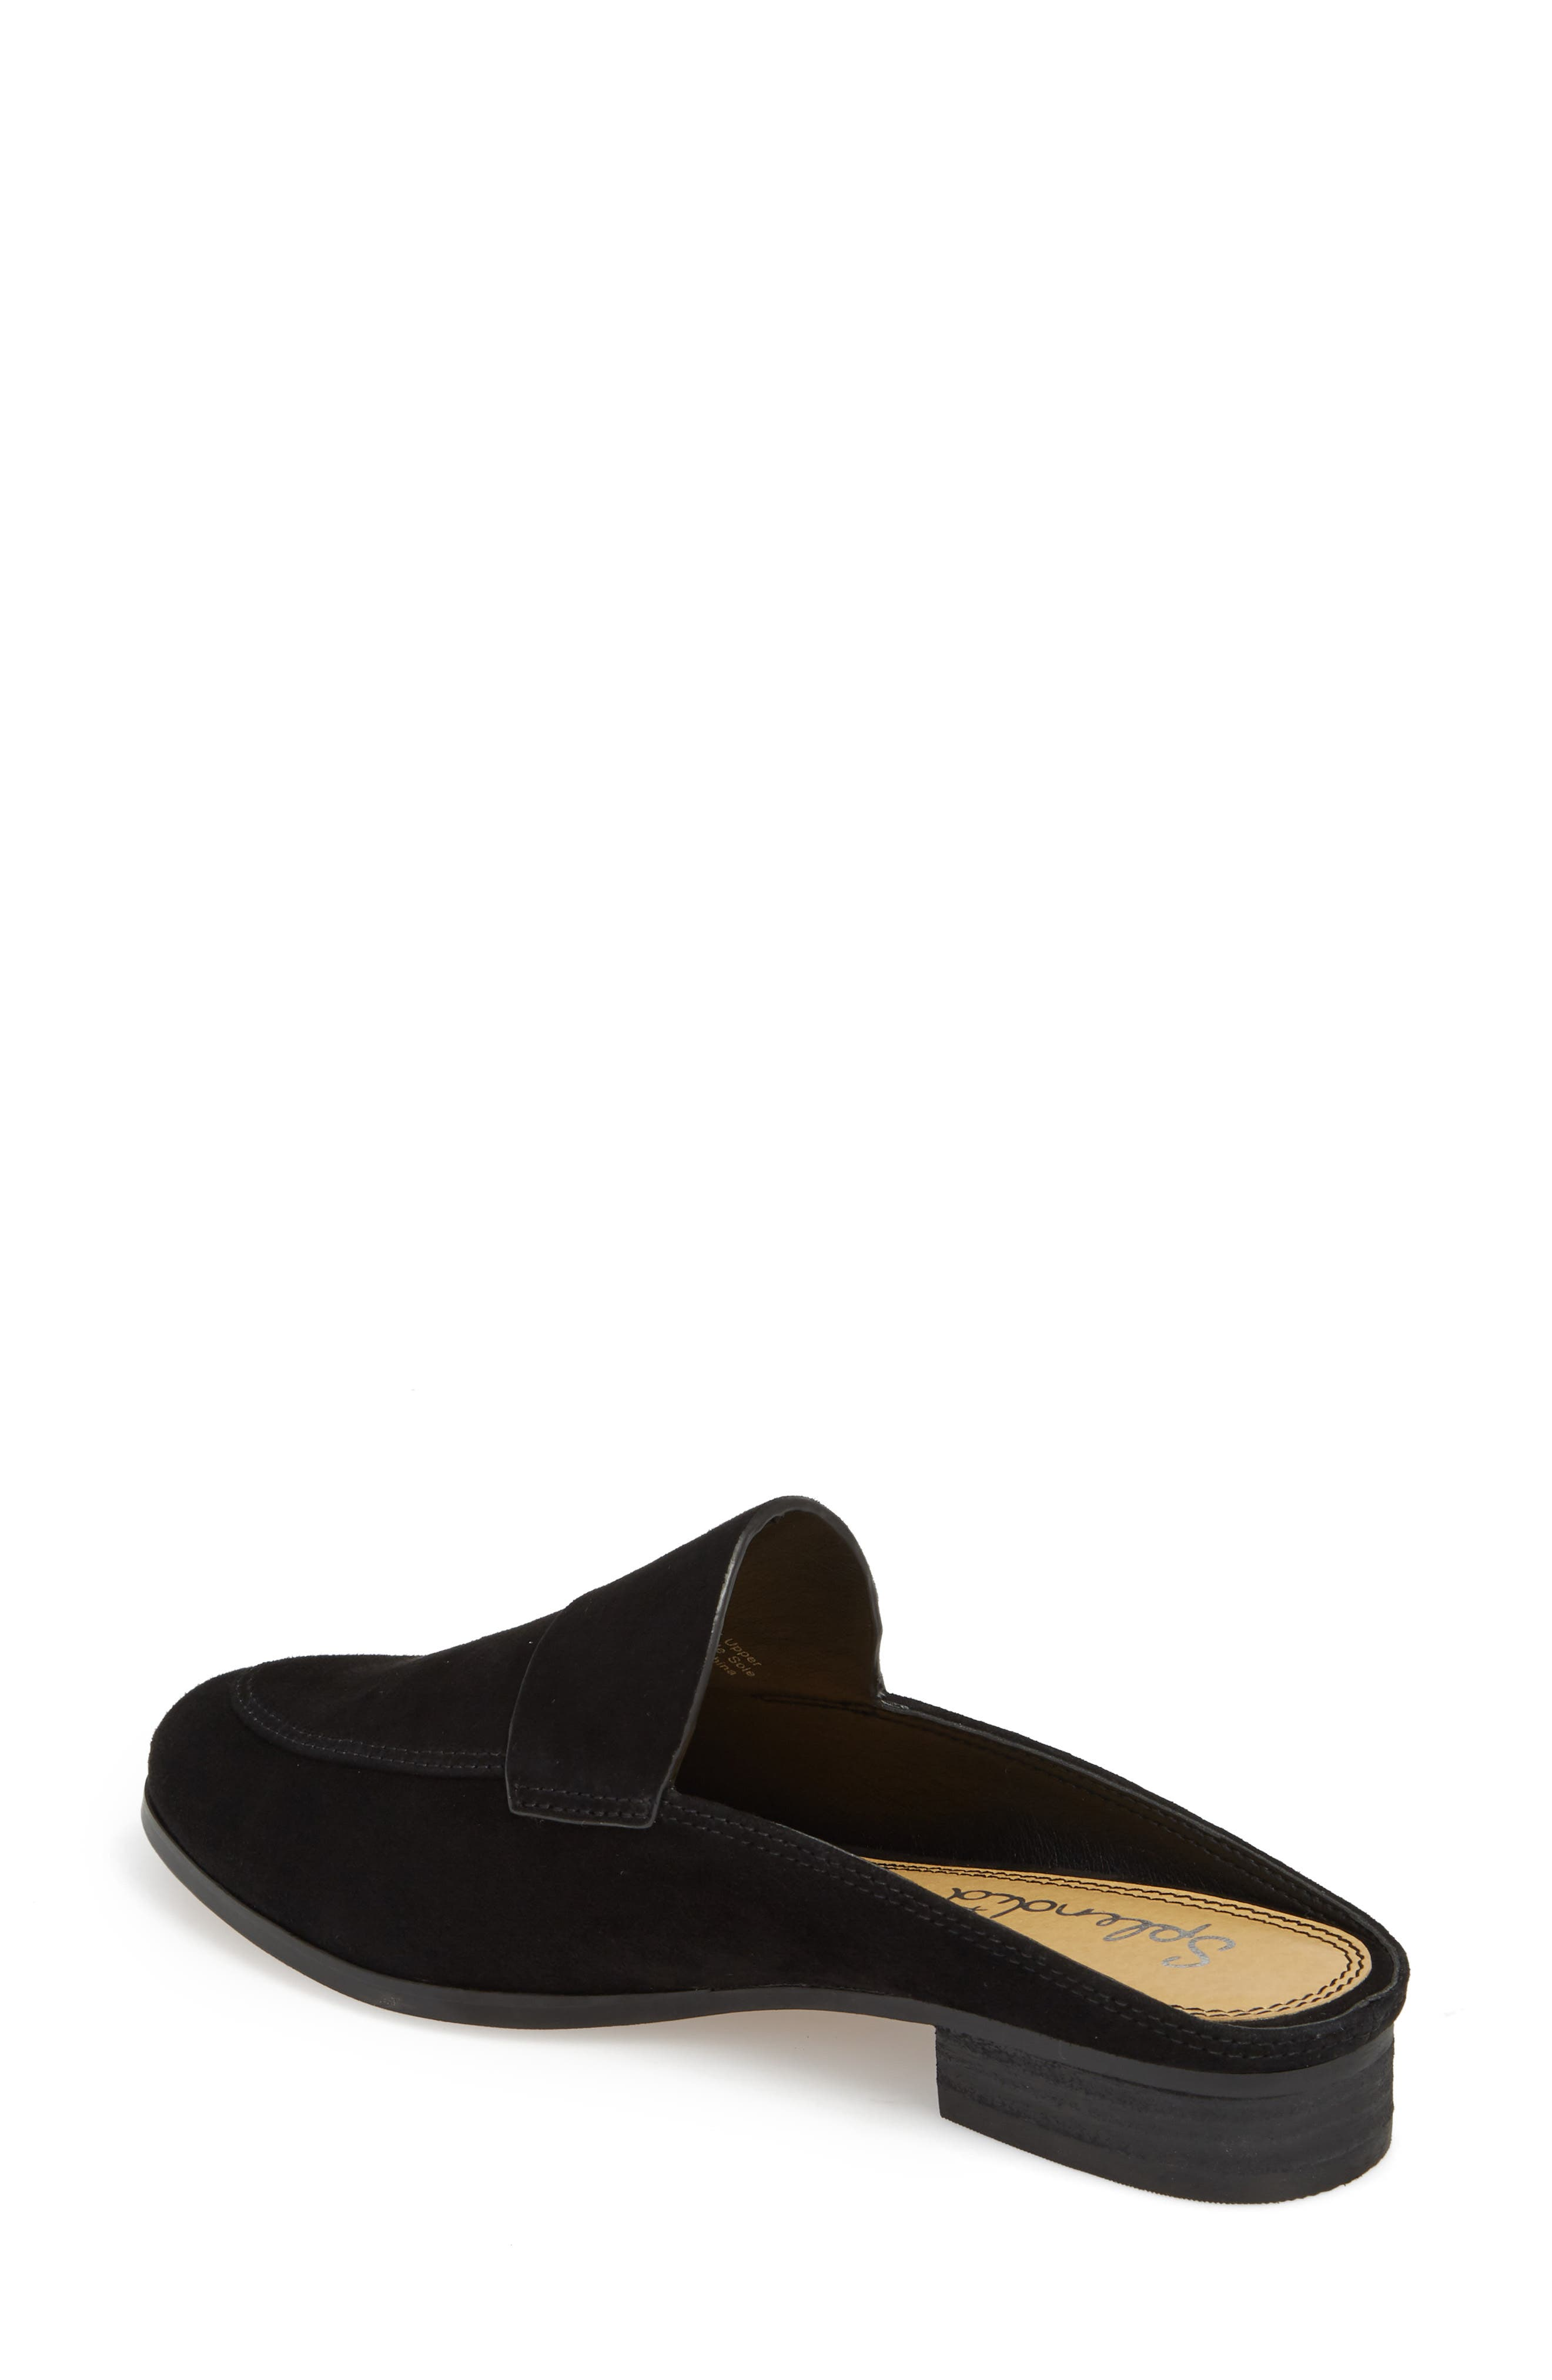 Nima Loafer Mule,                             Alternate thumbnail 2, color,                             013